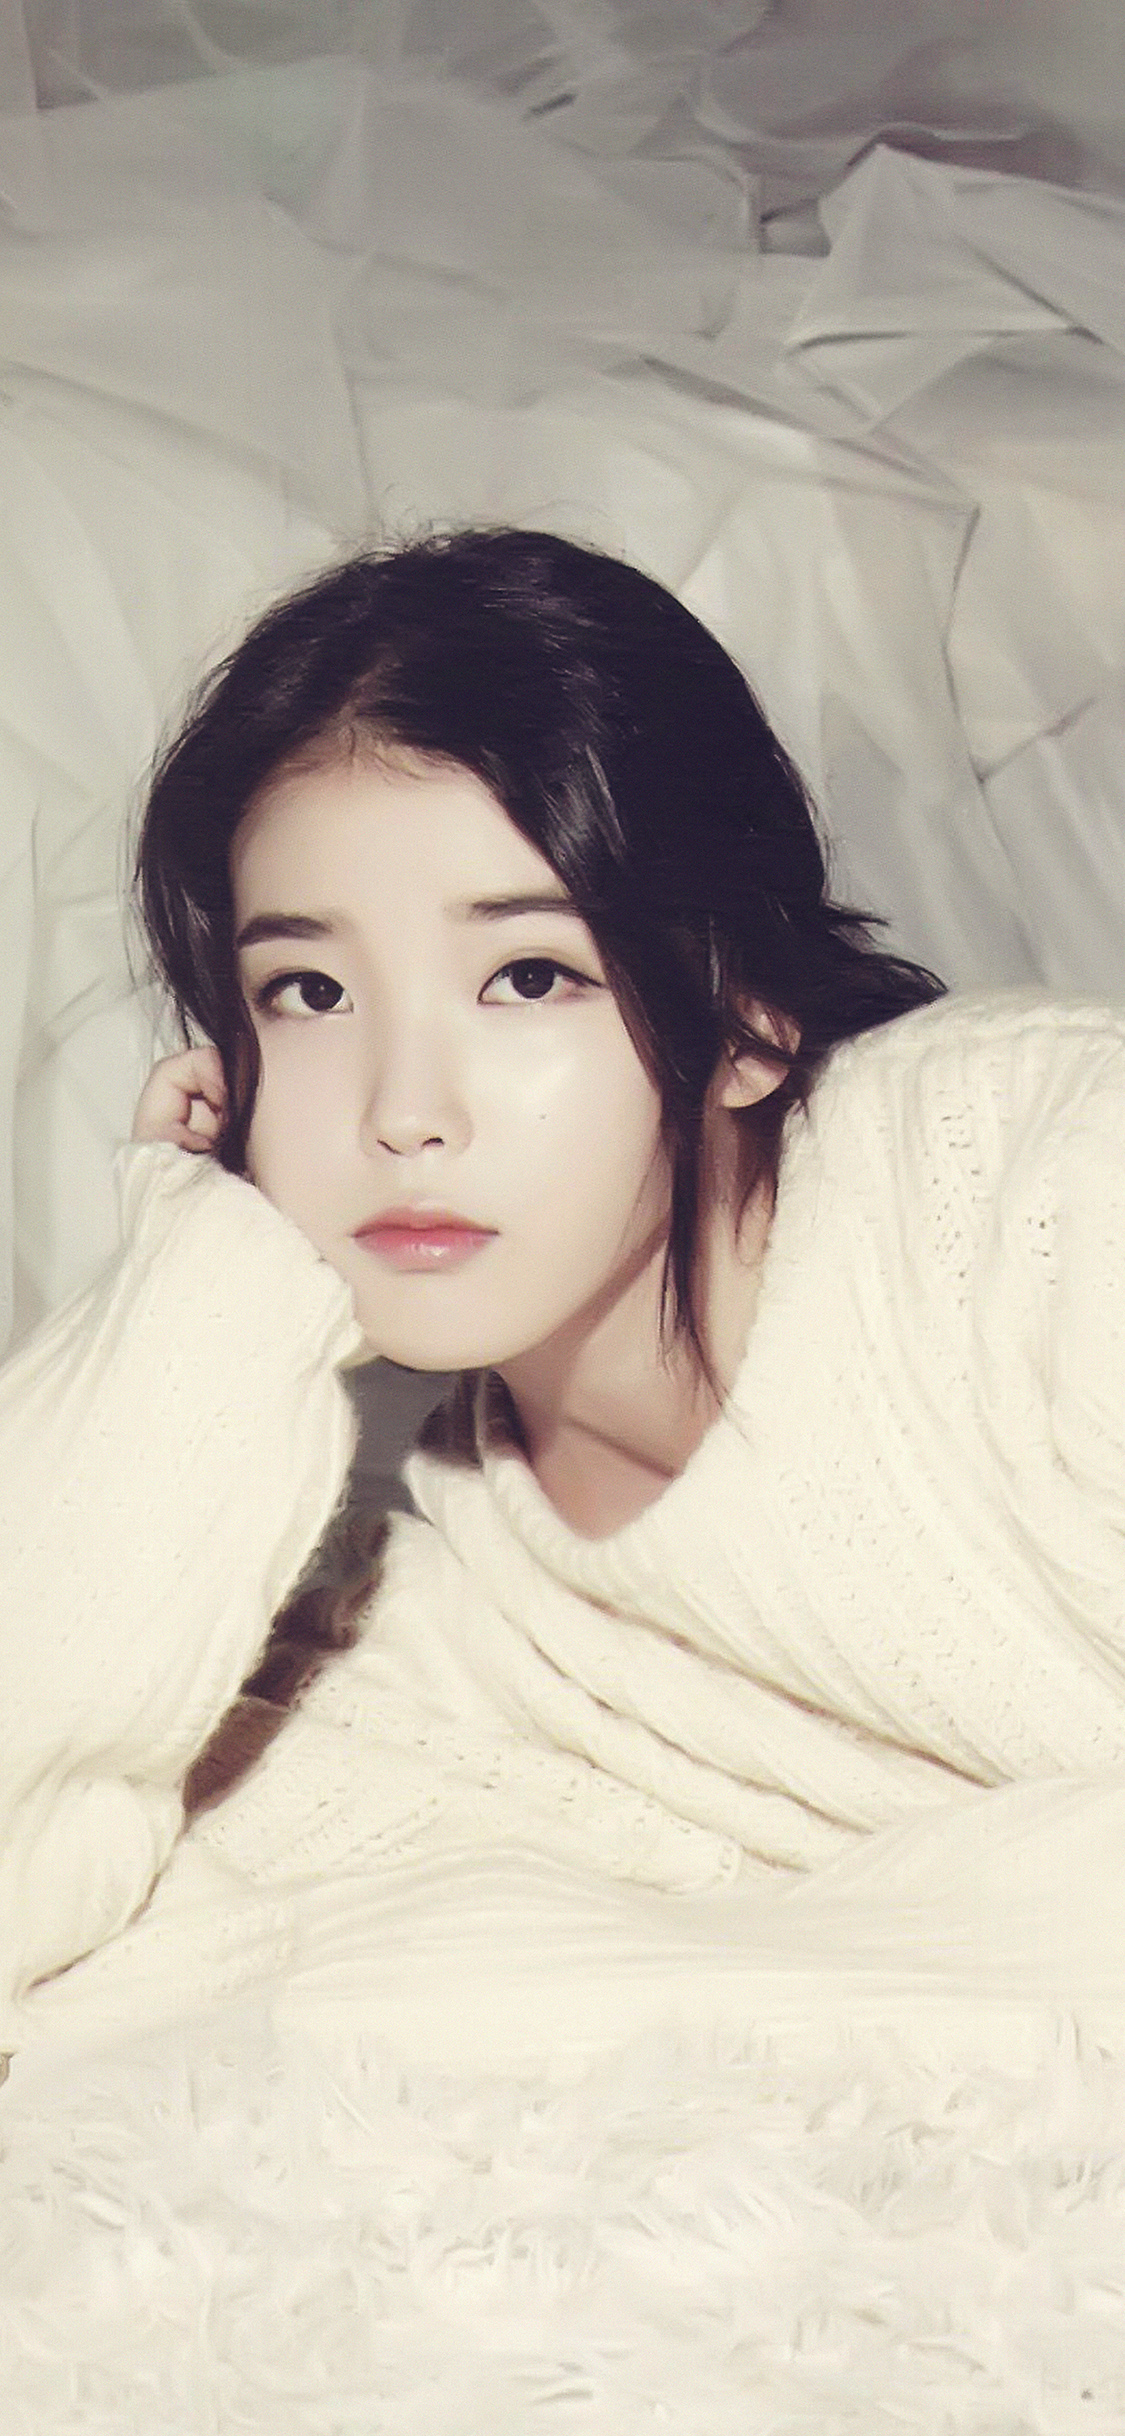 Cute Girl Wallpaper Hd For Android Hl32 Iu Kpop Girl Cute Wallpaper